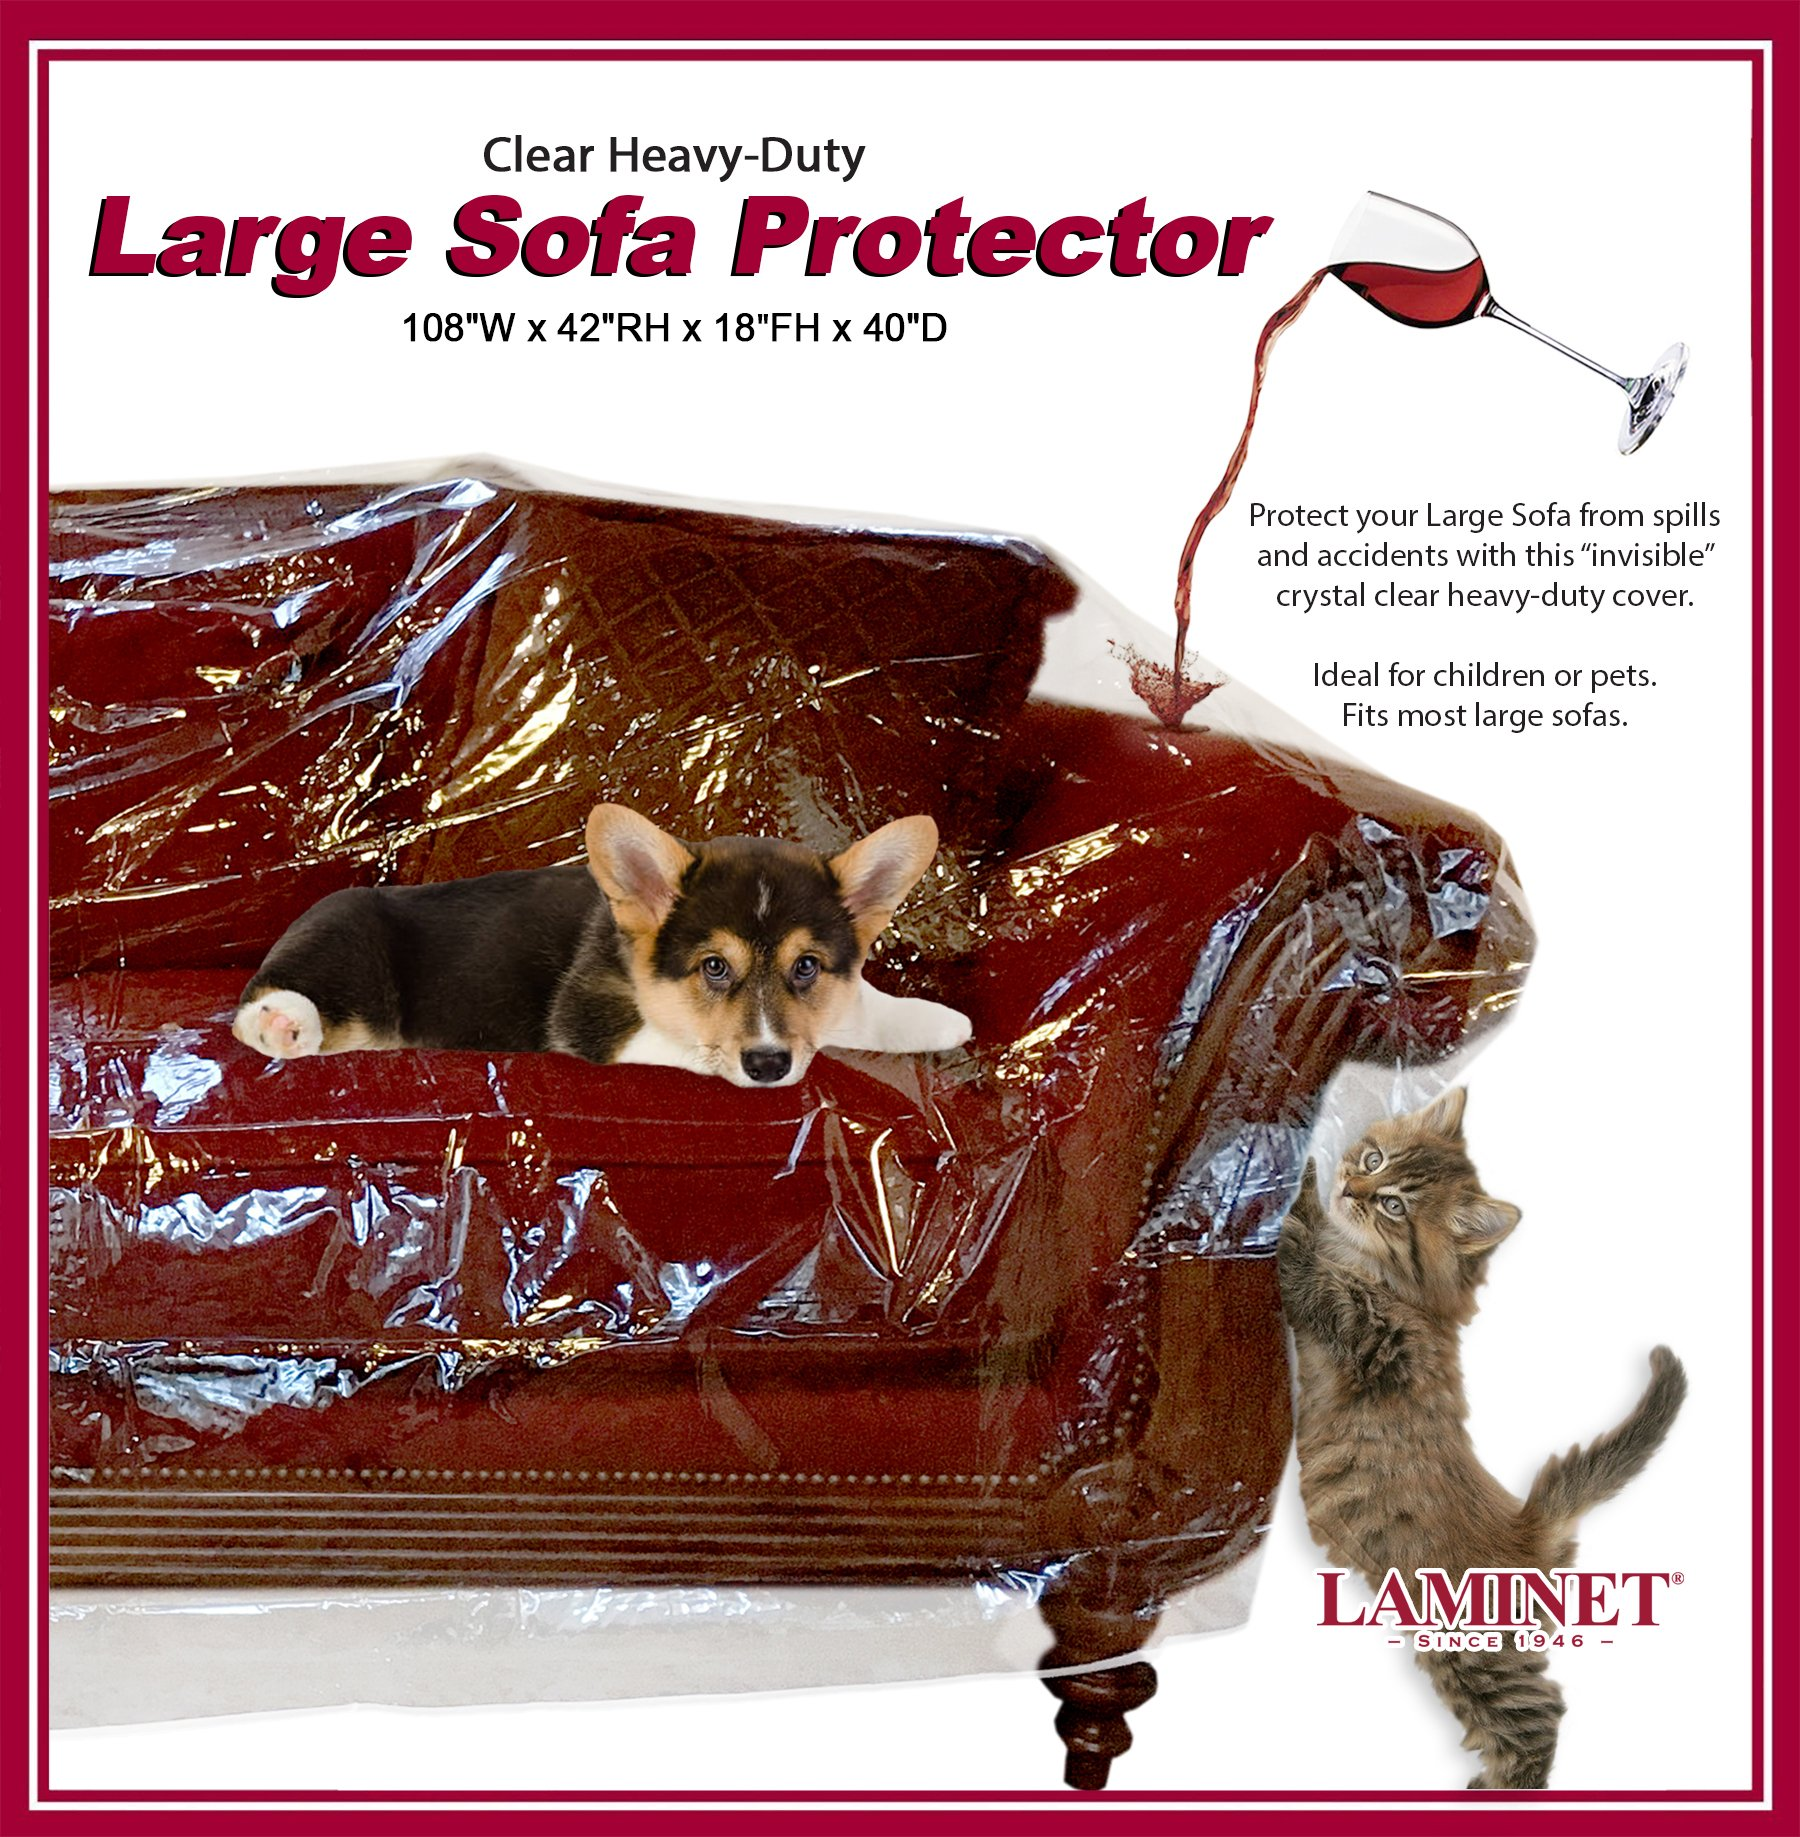 LAMINET Thick Crystal Clear Heavy-Duty Water Resistant Sofa/Couch Cover - Perfect for Protection Against CAT/Dog Clawing, Kids and Grandkids!!! - Large Sofa - 42'' BH x 18'' FH x 108''W x 40''D